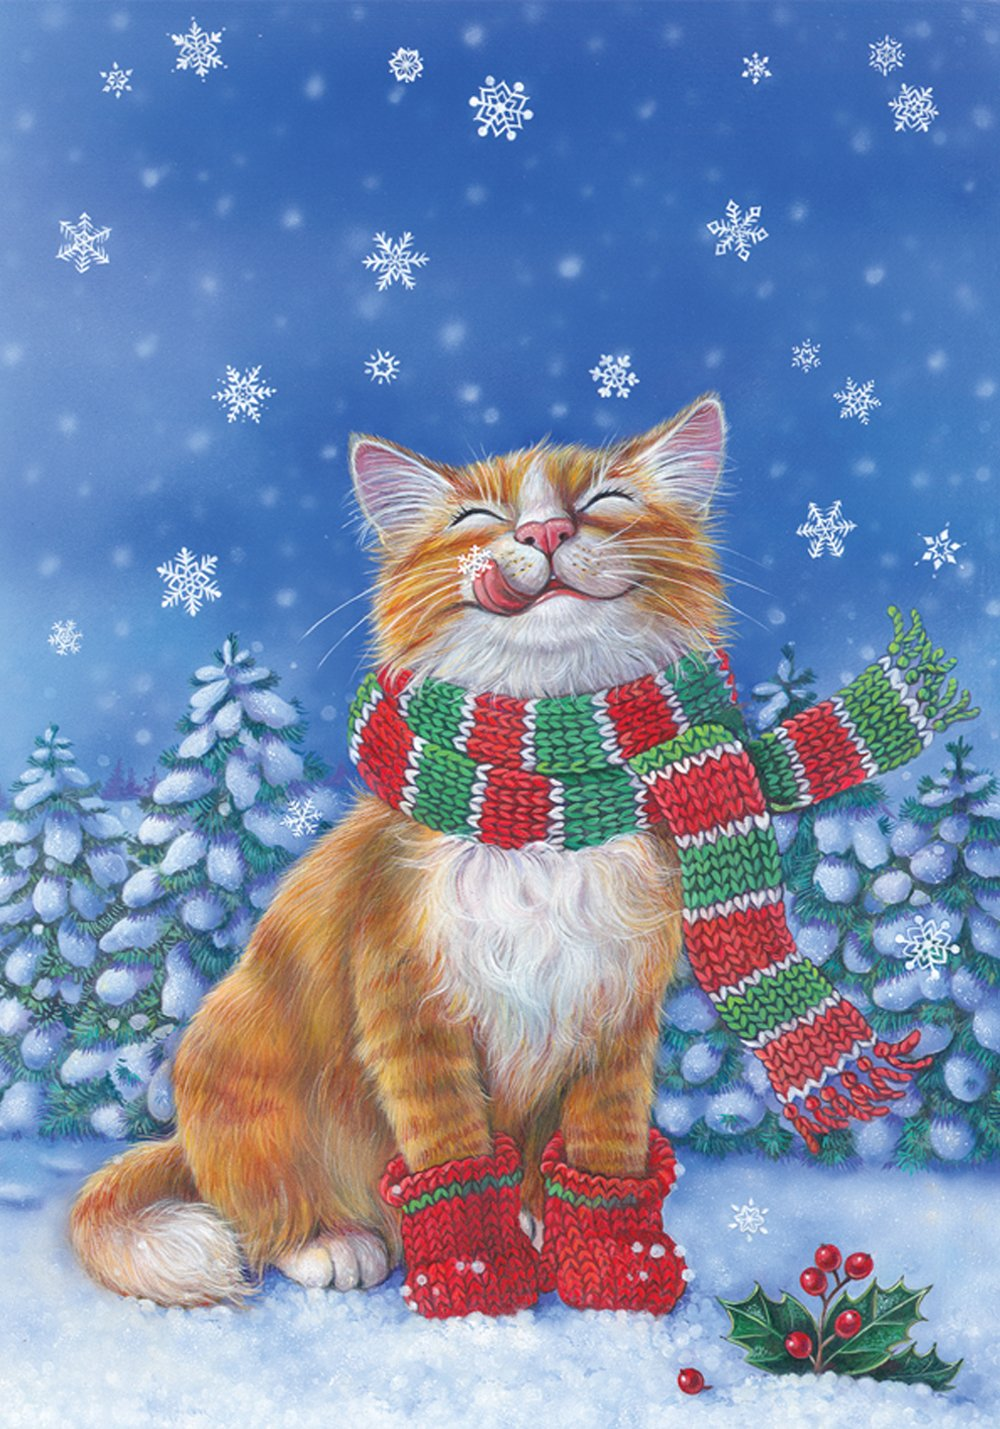 Amazon.com : Toland   Kitten Mittens   Decorative Snow Flake Winter Cute  Tabby Cat Scarf USA Produced Garden Flag : Outdoor Flags : Patio, Lawn U0026  Garden